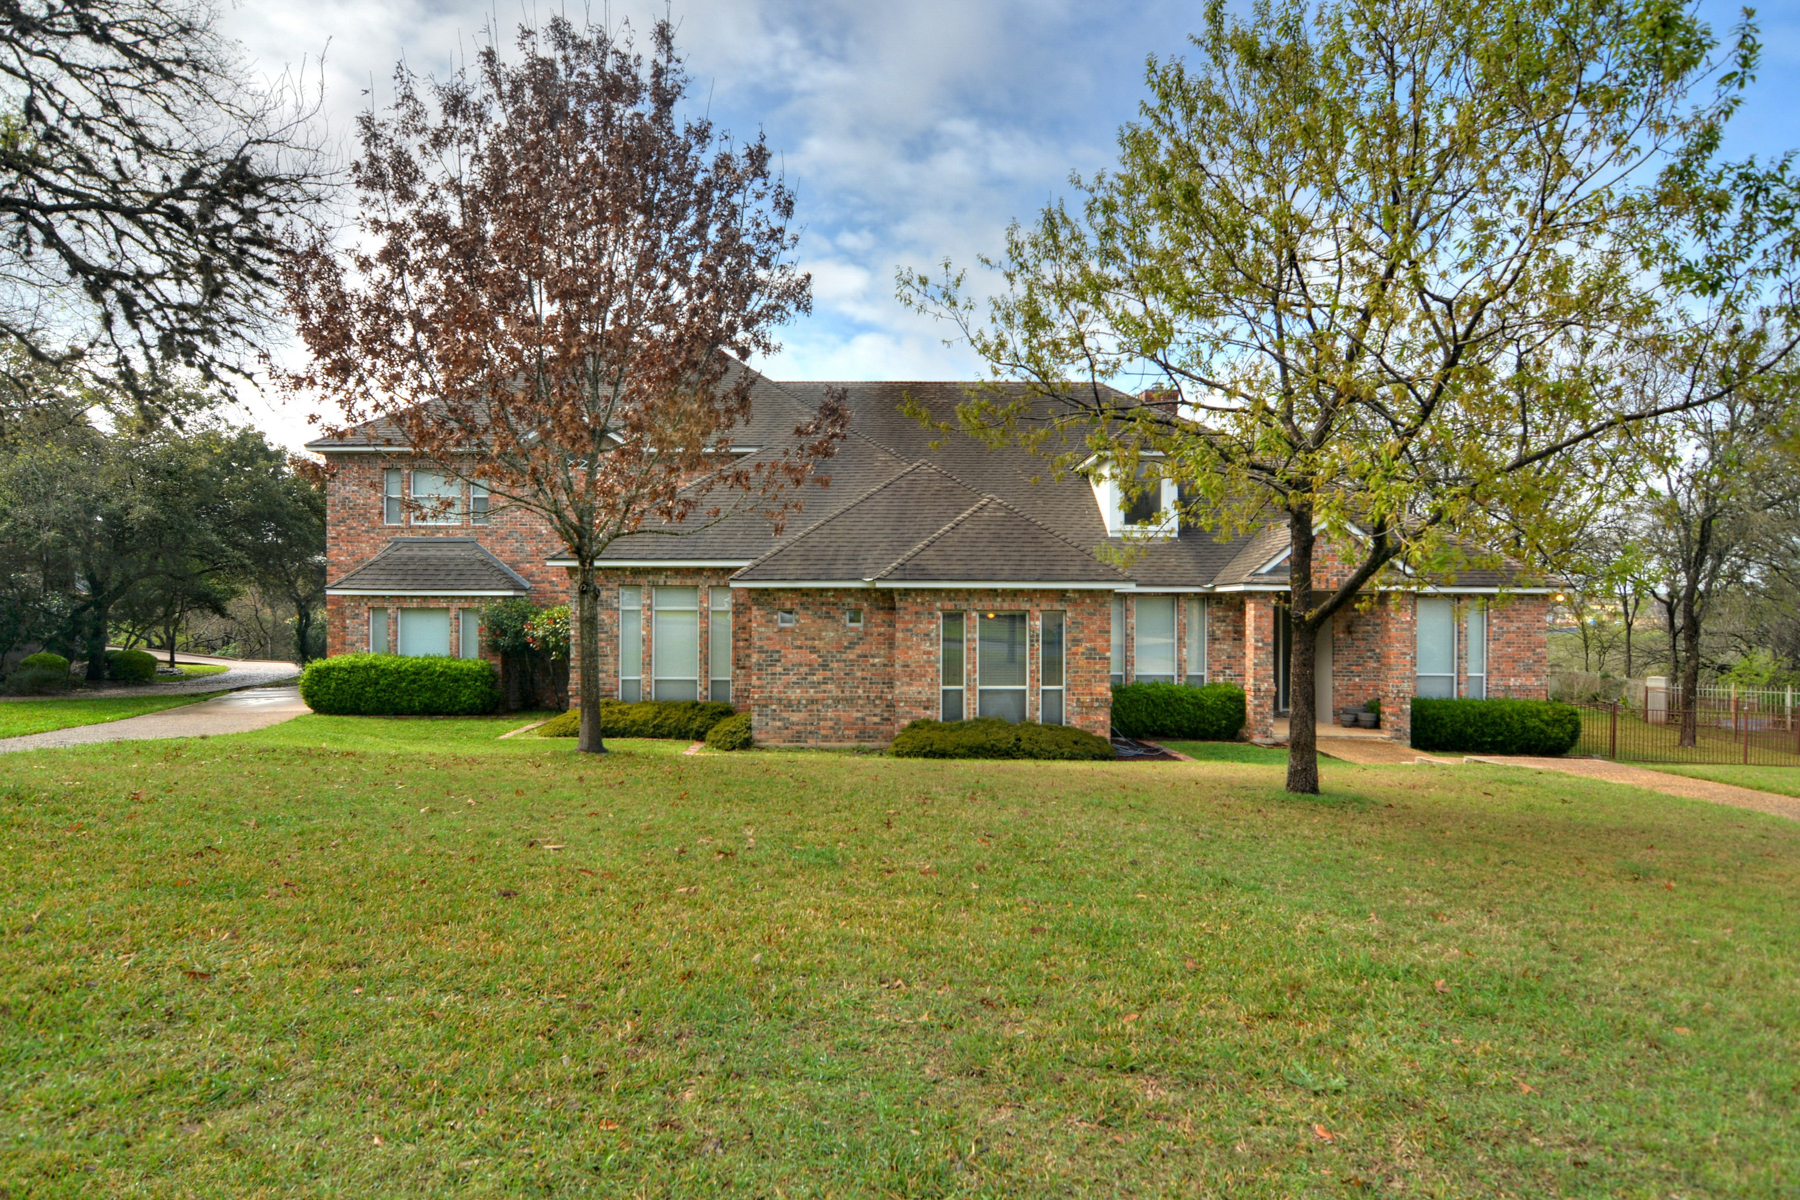 Single Family Home for Sale at Beautiful Home in Fair Oaks Ranch 29825 Windchime Hill Fair Oaks Ranch, Texas 78015 United States